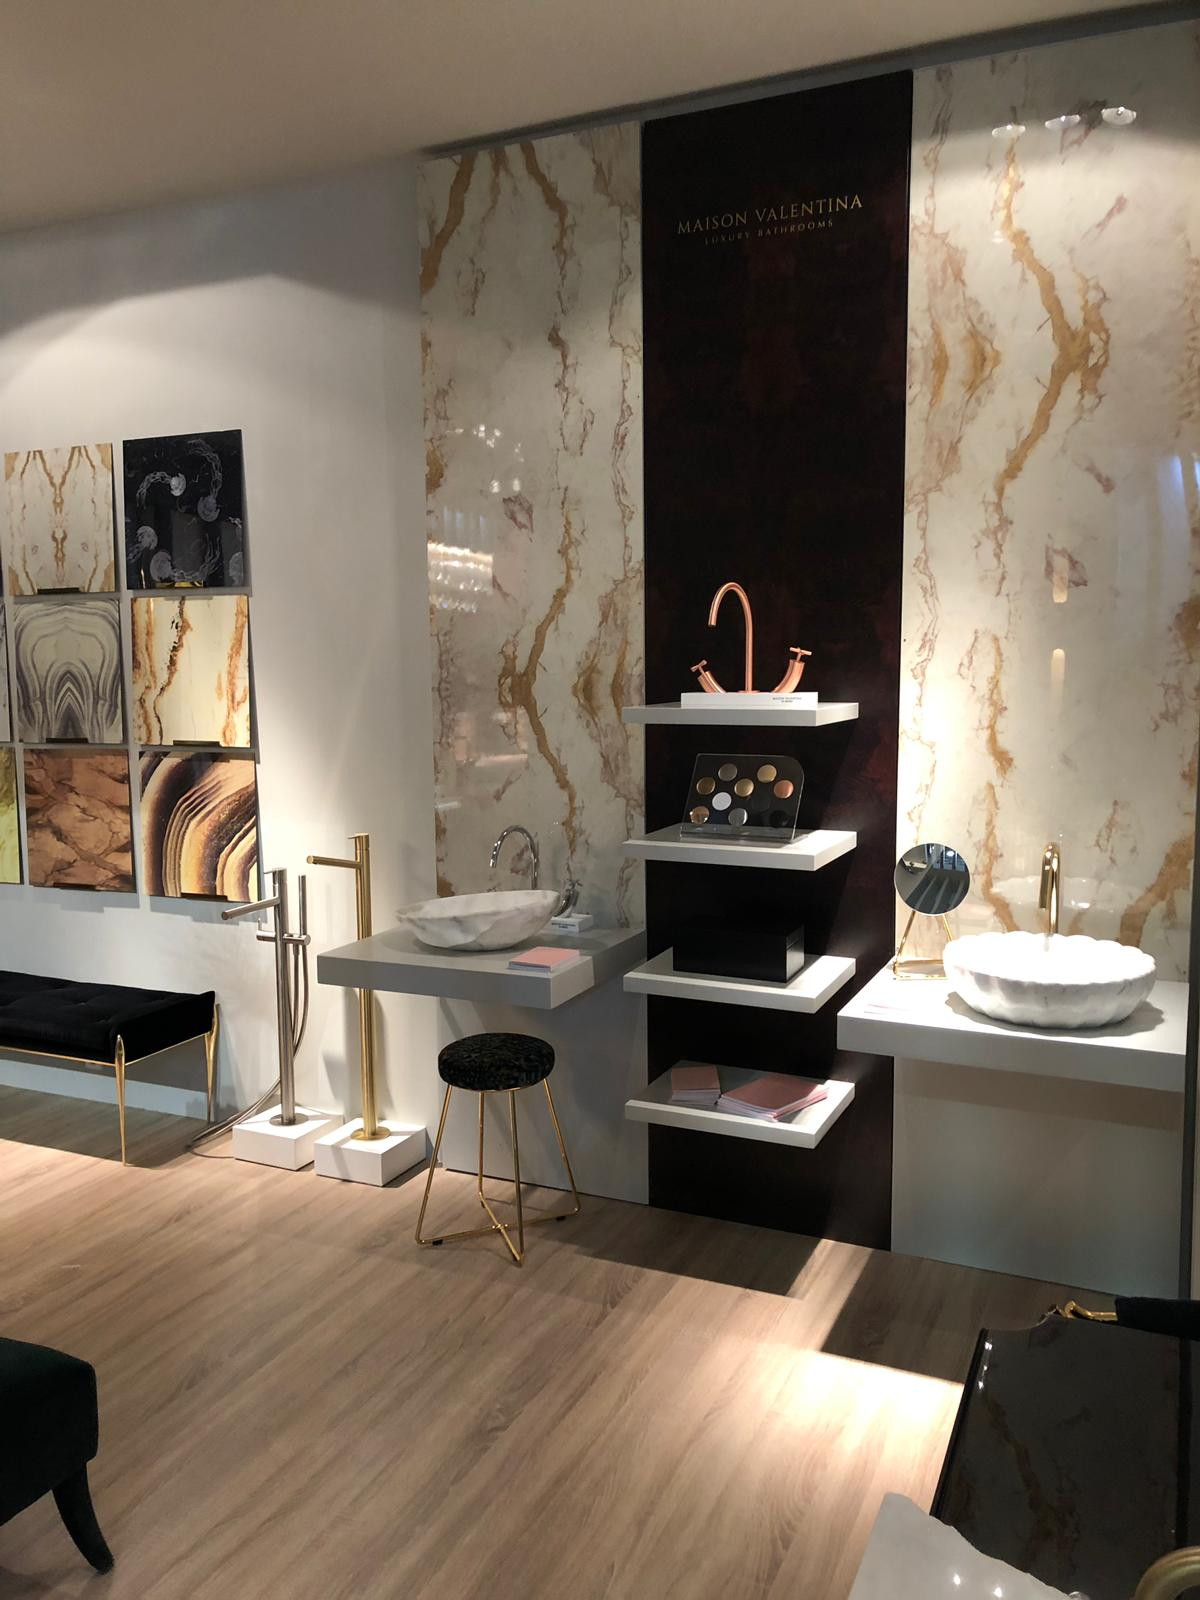 See Highlights from Maison Valentina's Stand at Maison et Objet 2019 (2) maison et objet See Highlights from Maison Valentina's Stand at Maison et Objet 2019 See Highlights from Maison Valentinas Stand at Maison et Objet 2019 2